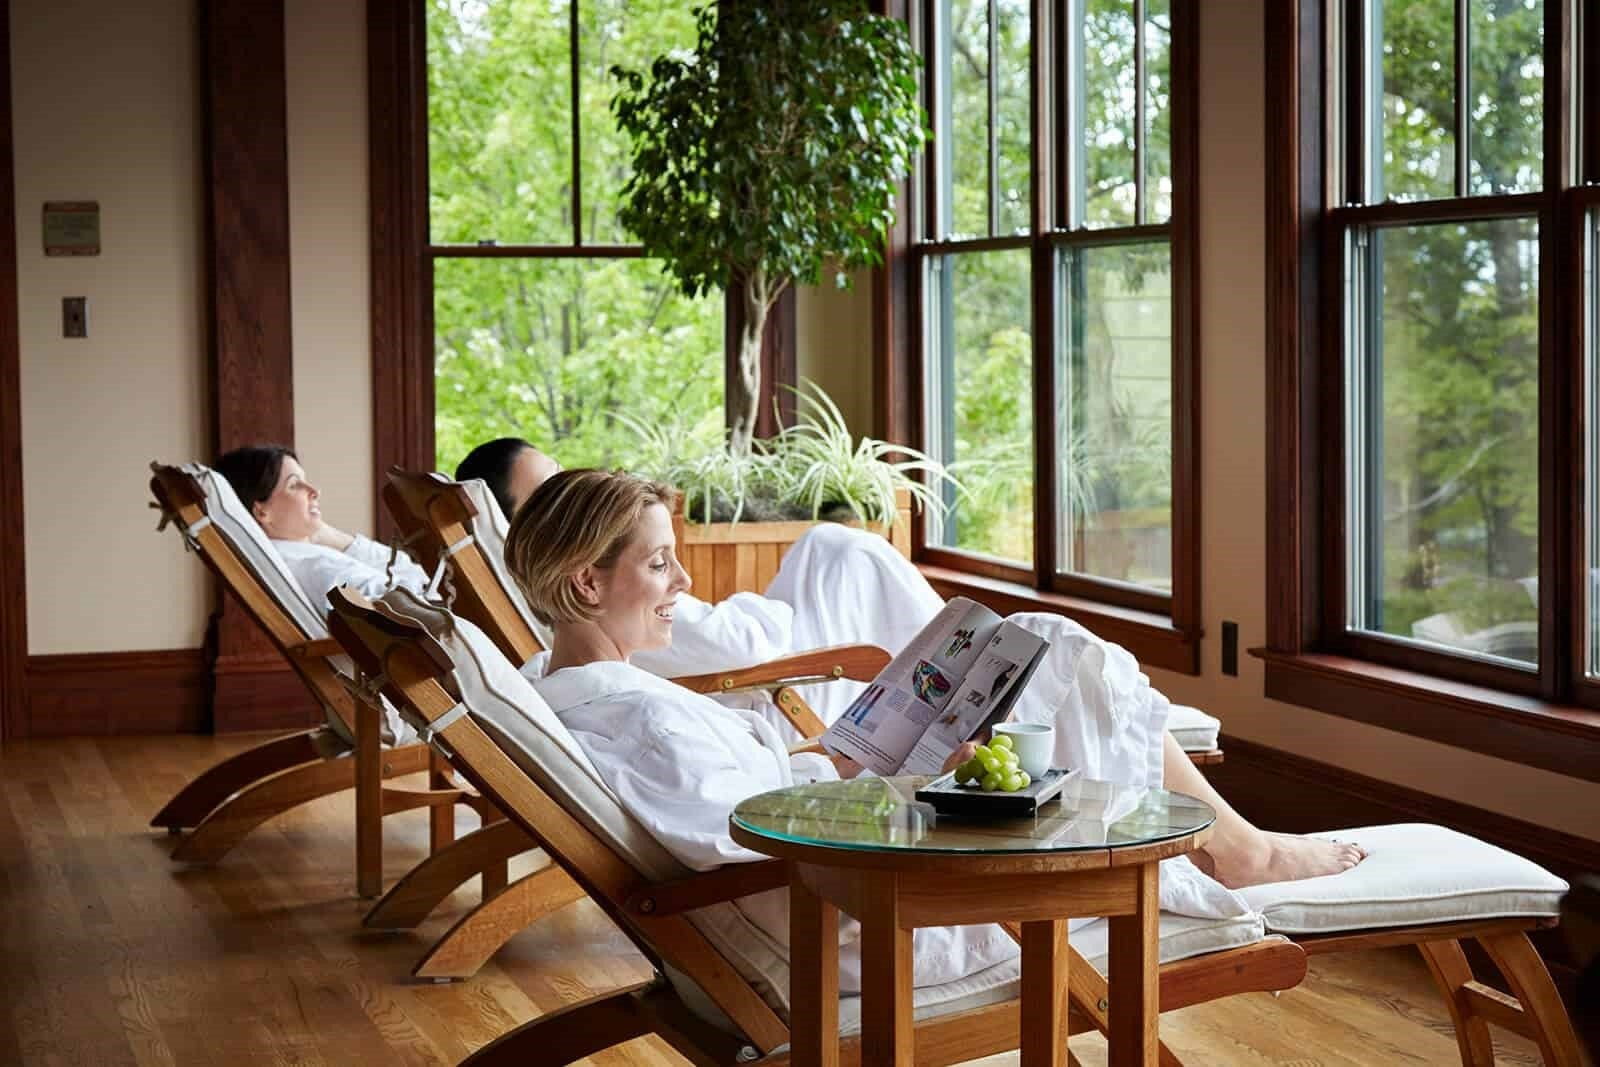 Traveler's PAcking List - What to Pack for a Spa Getaway